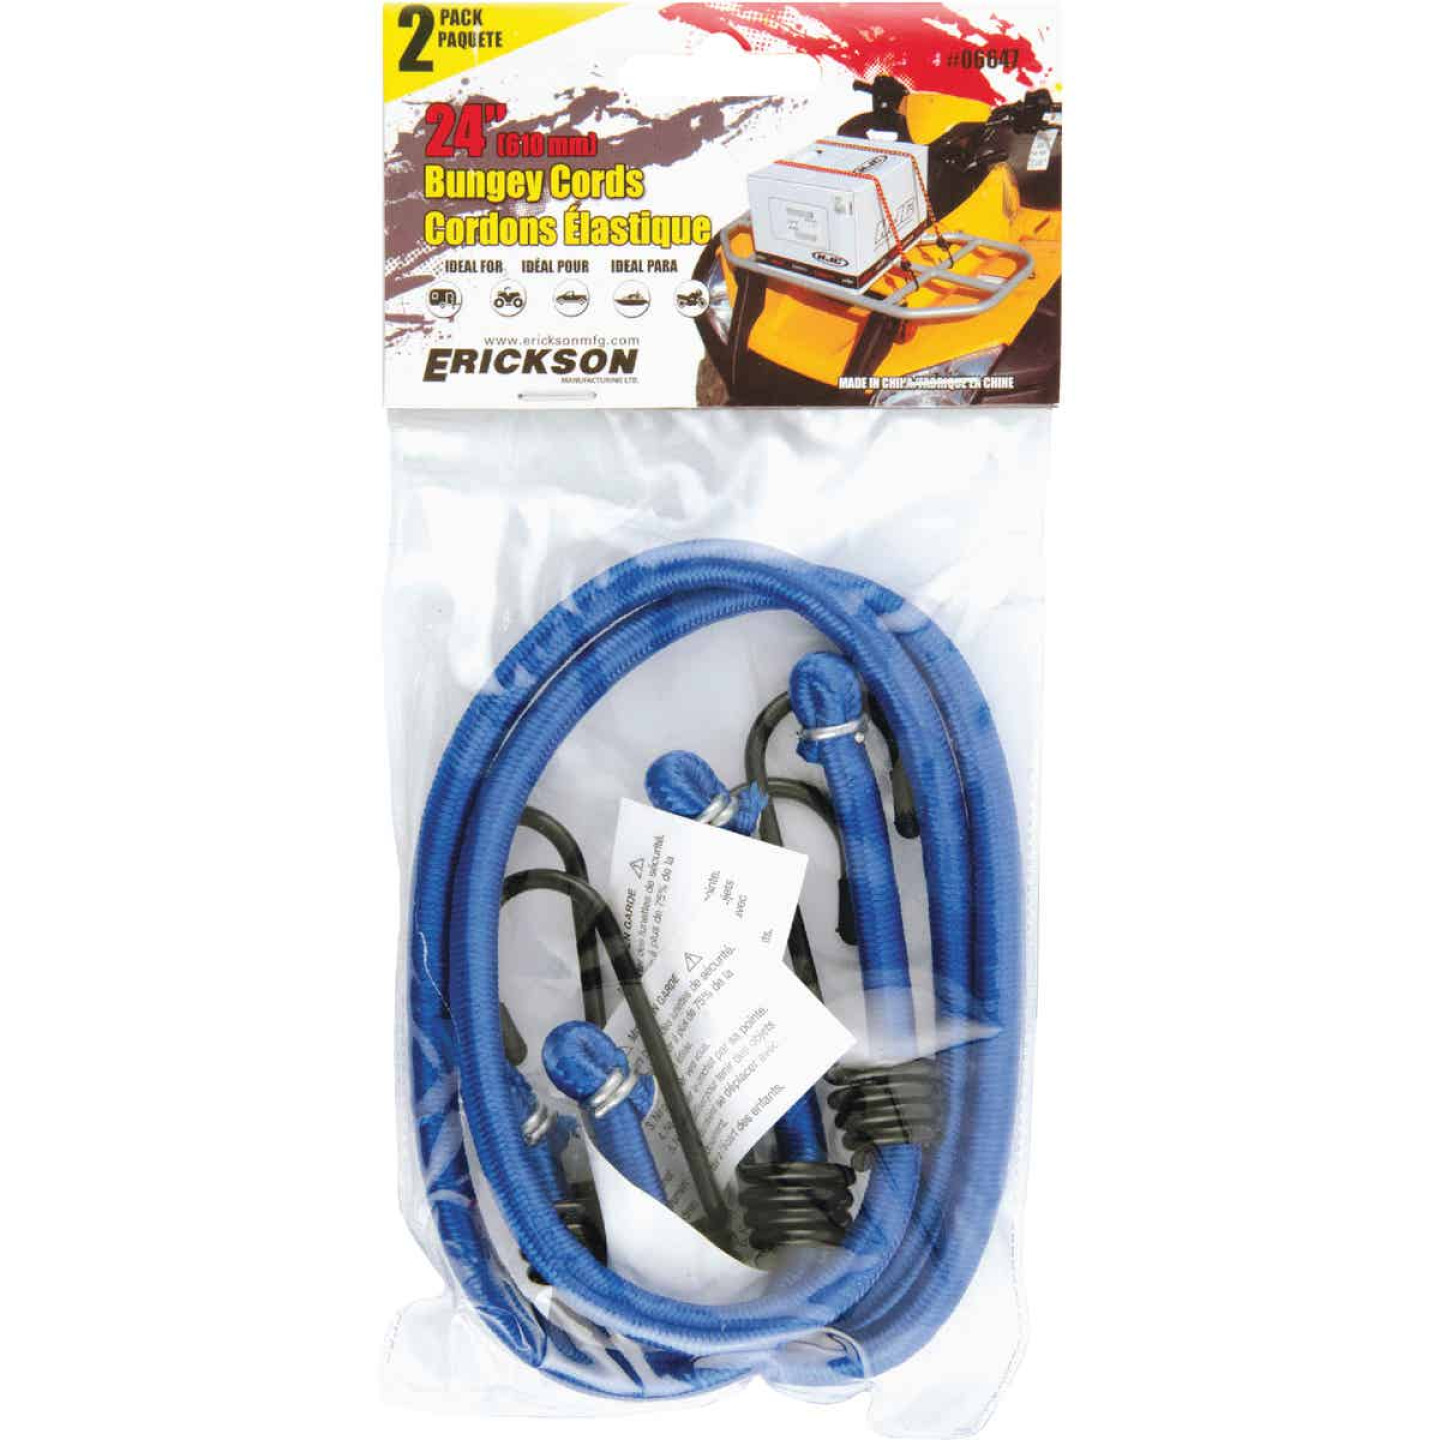 "Erickson 8mm x 24"" Vinyl Coated Steel Bungee Cord Set Image 2"